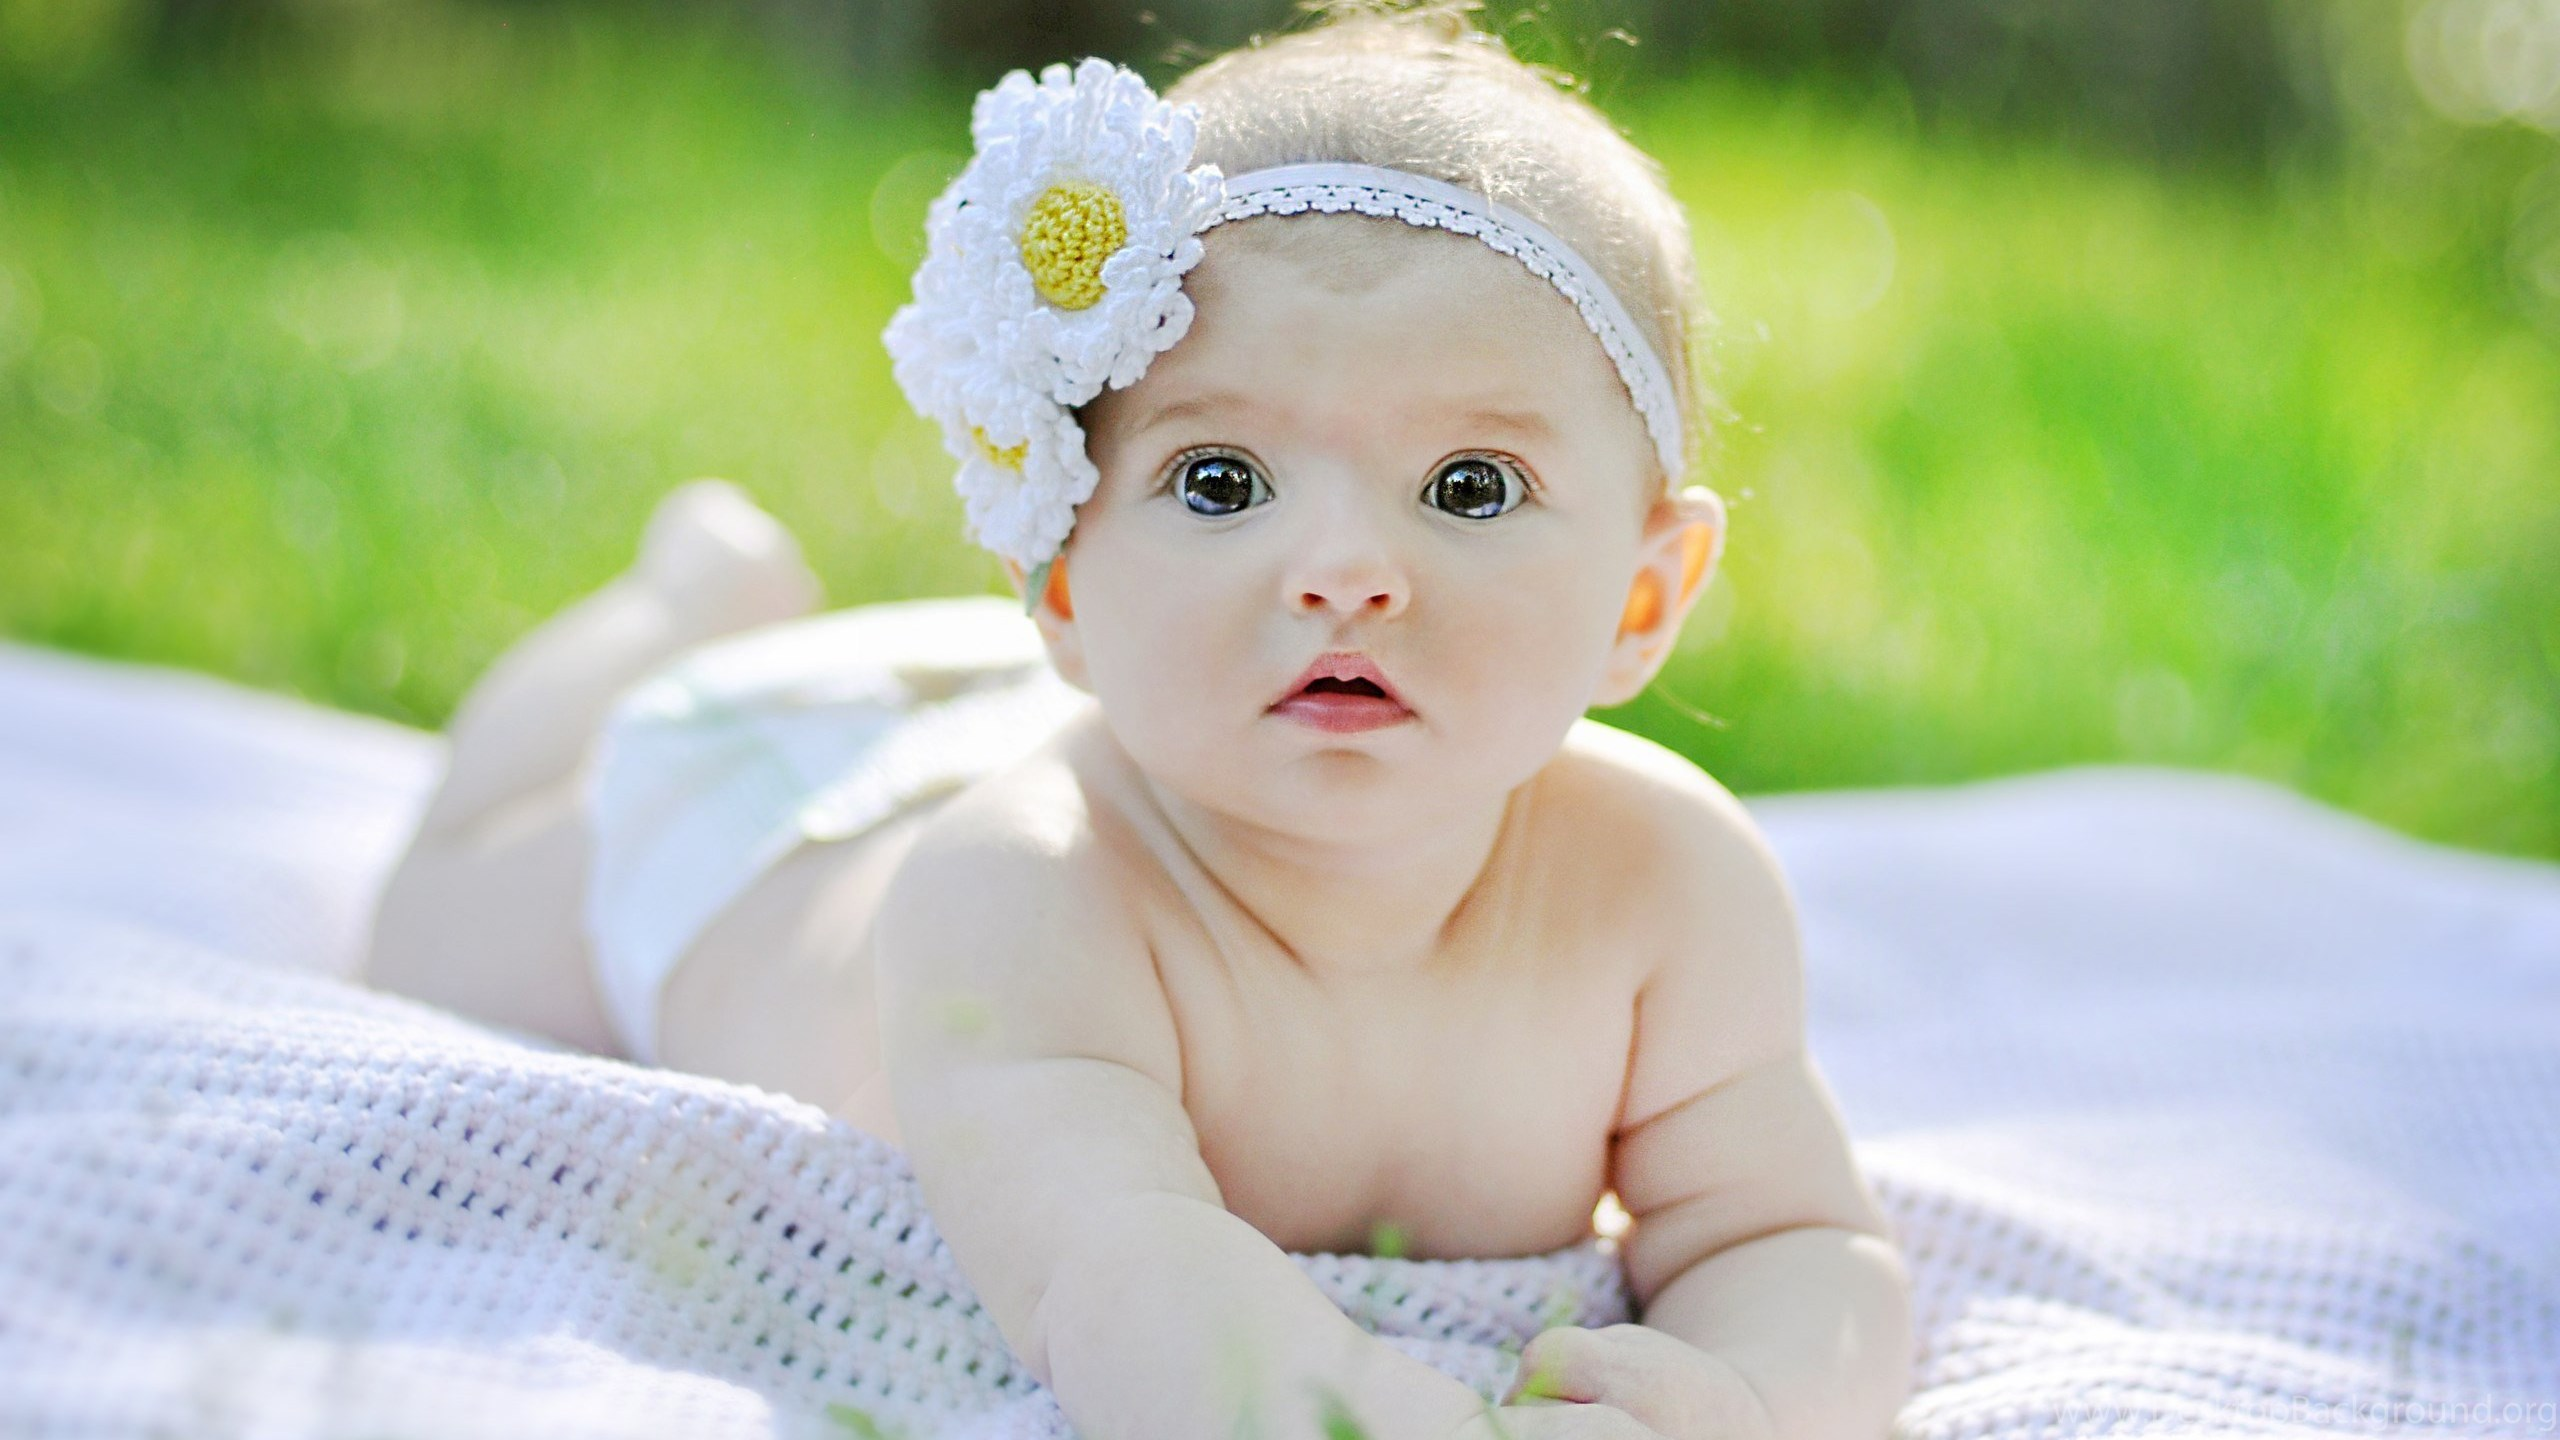 hd cute child babies wallpapers ultra hd full size hirewallpapers